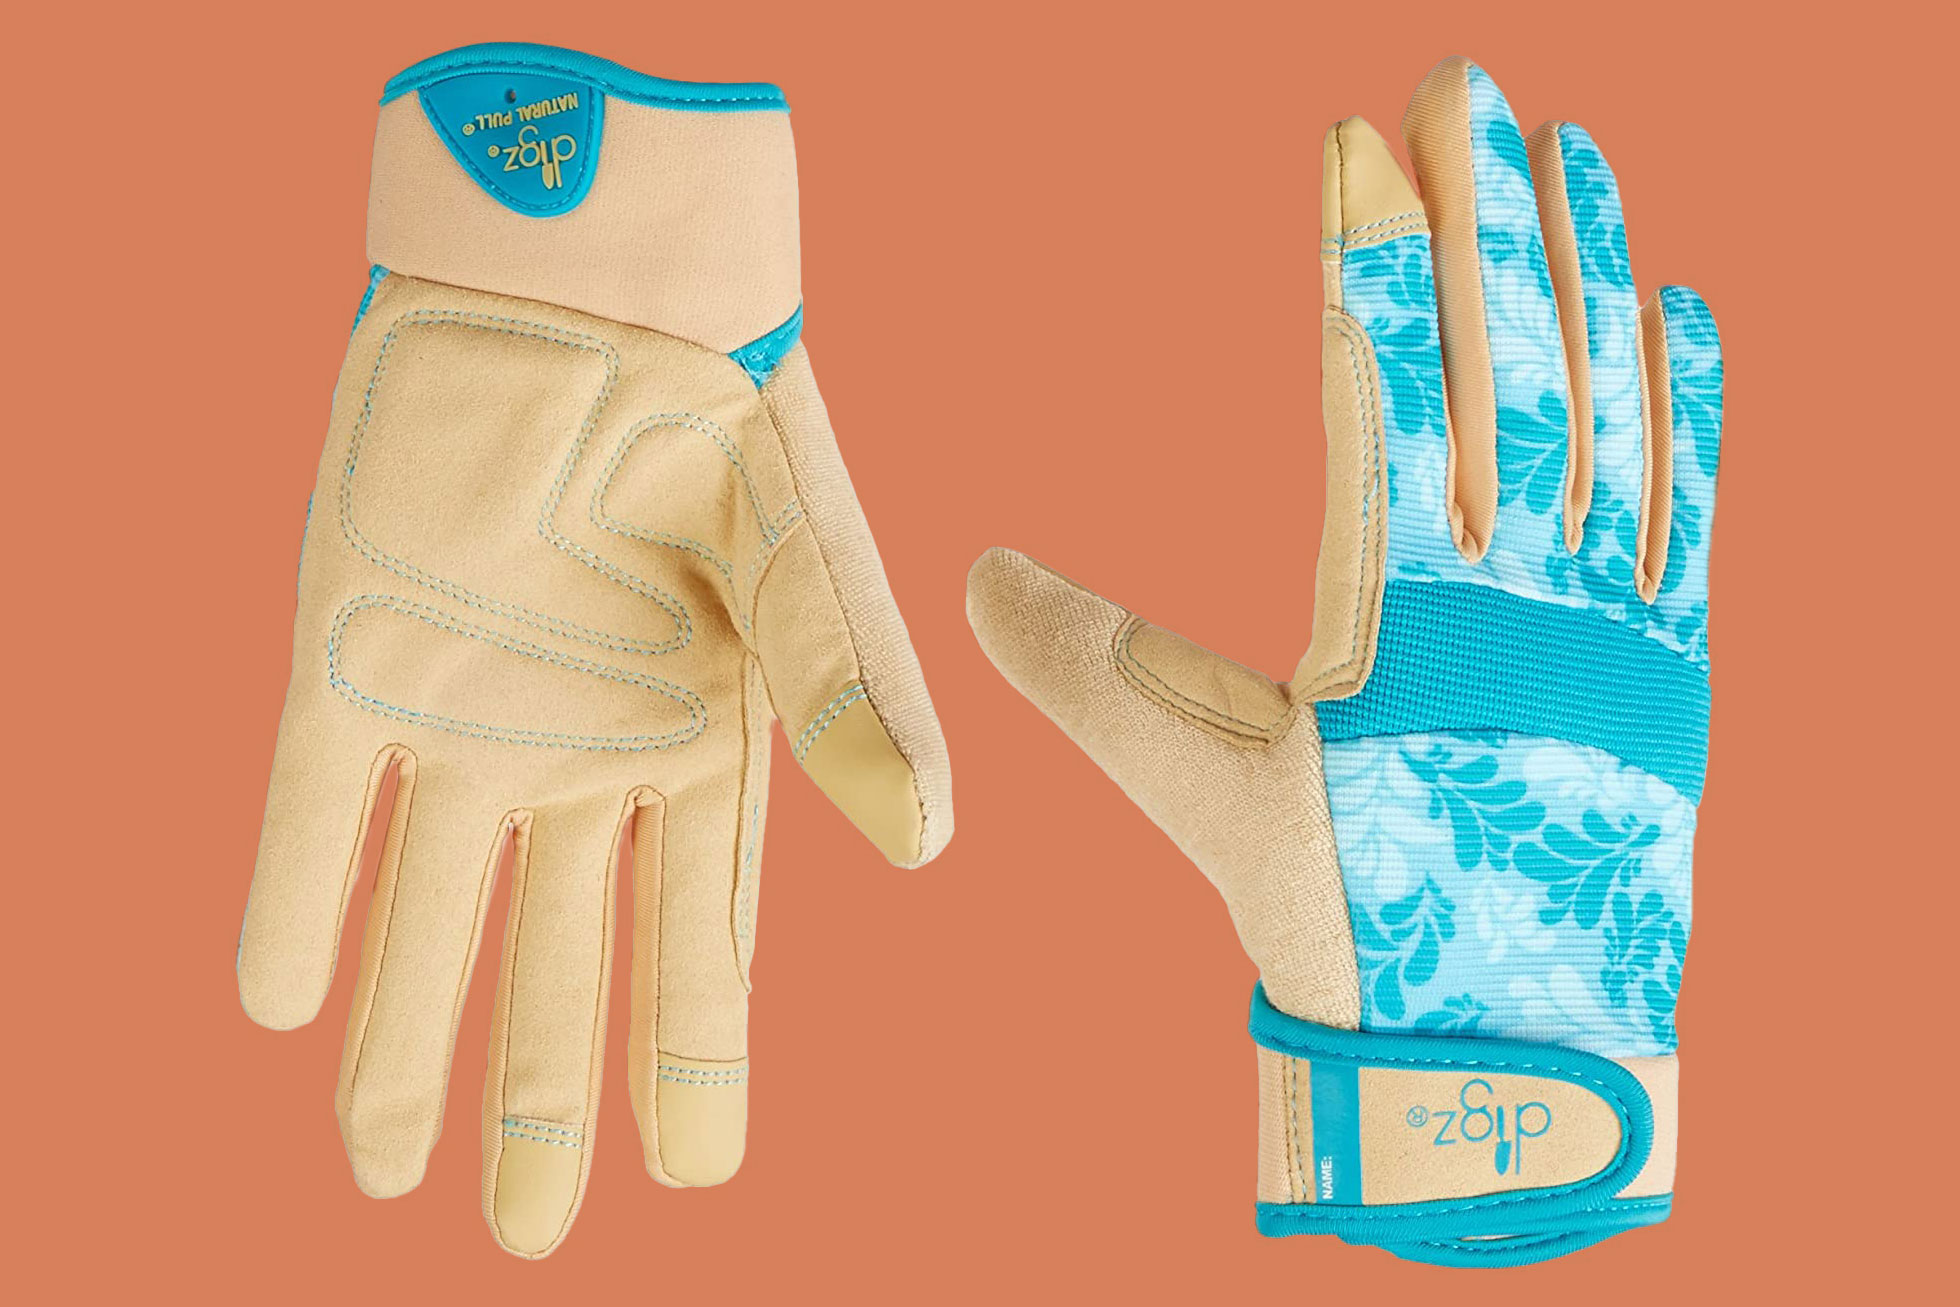 Digz High Performance Gardening Gloves